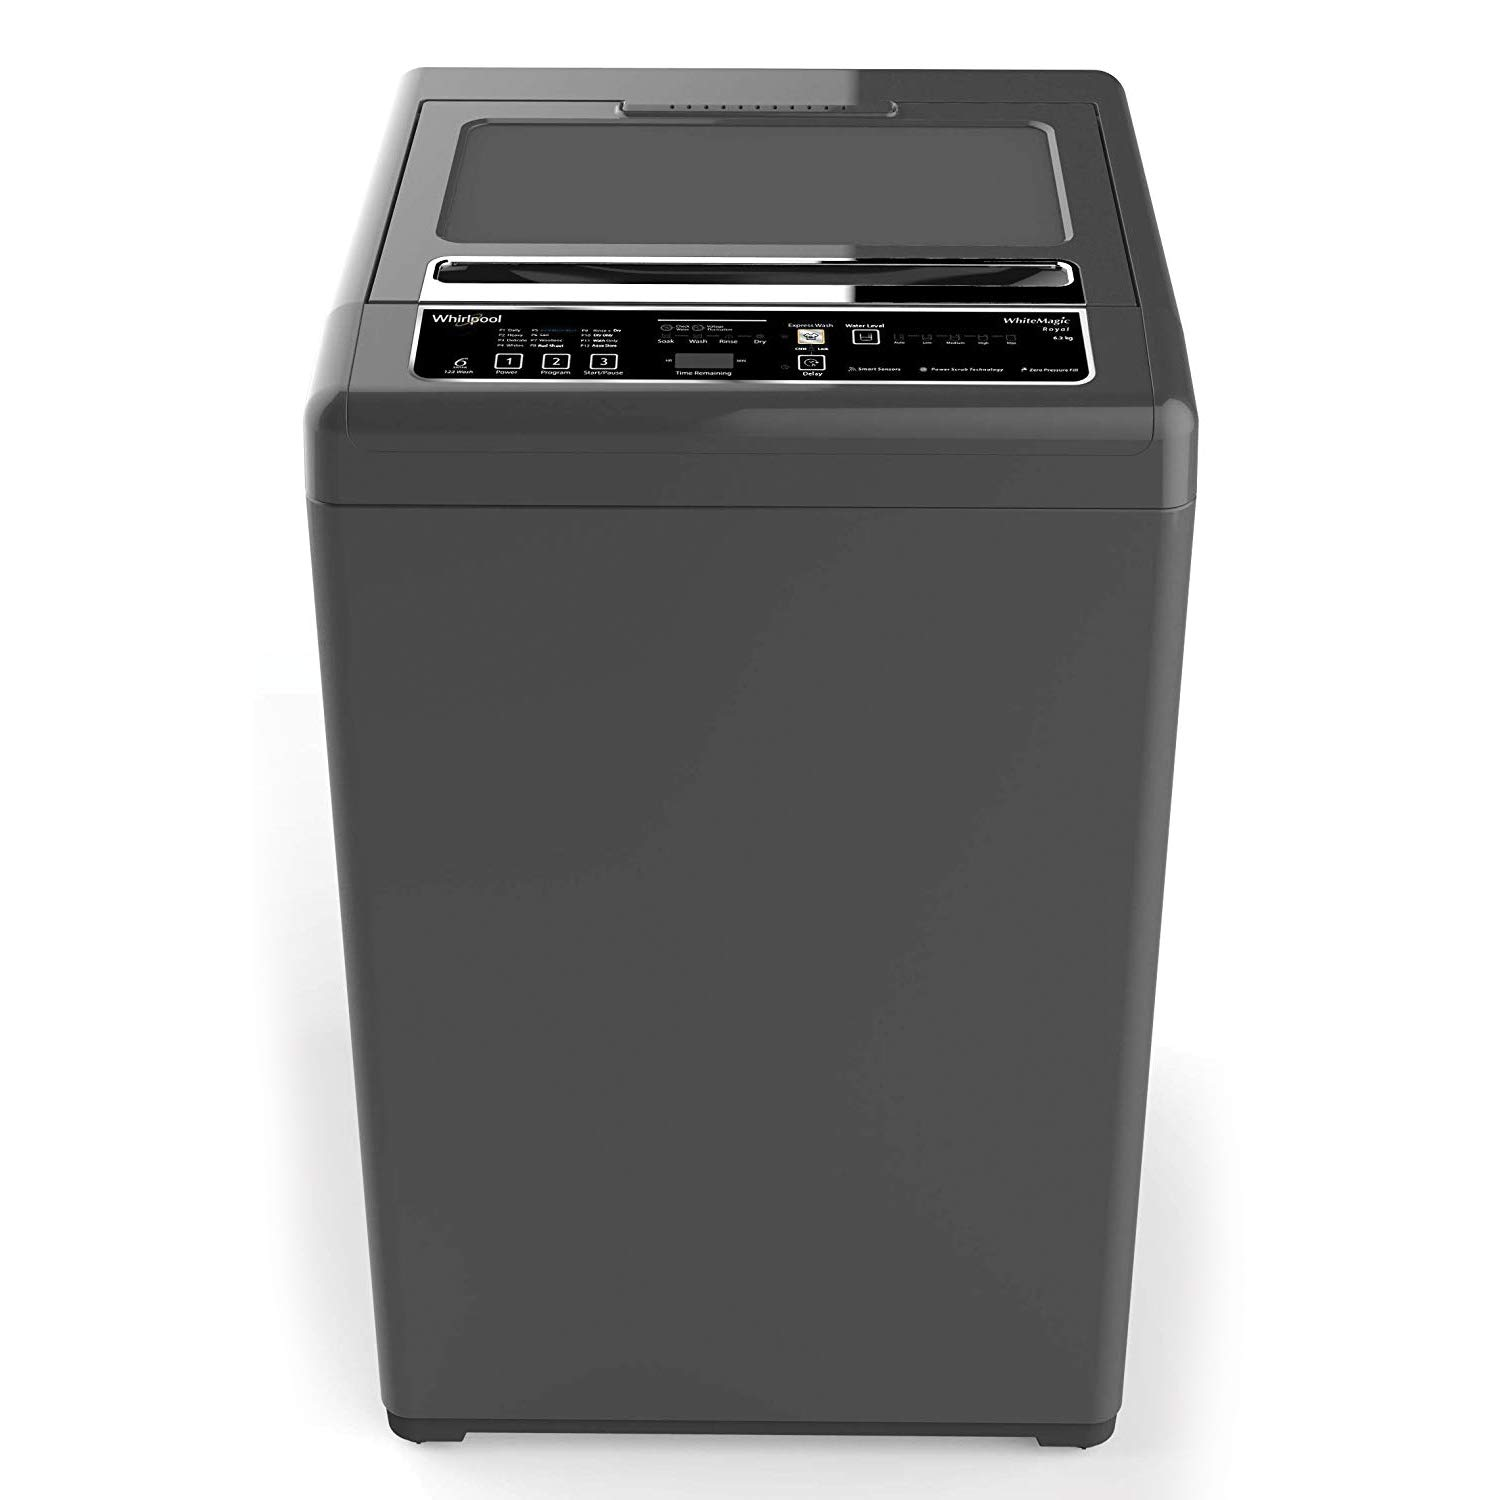 Whirlpool 6.2 kg Fully-Automatic Top Loading Washing Machine (WHITEMAGIC ROYAL 6.2, Shiny Grey, Hard Water Wash)